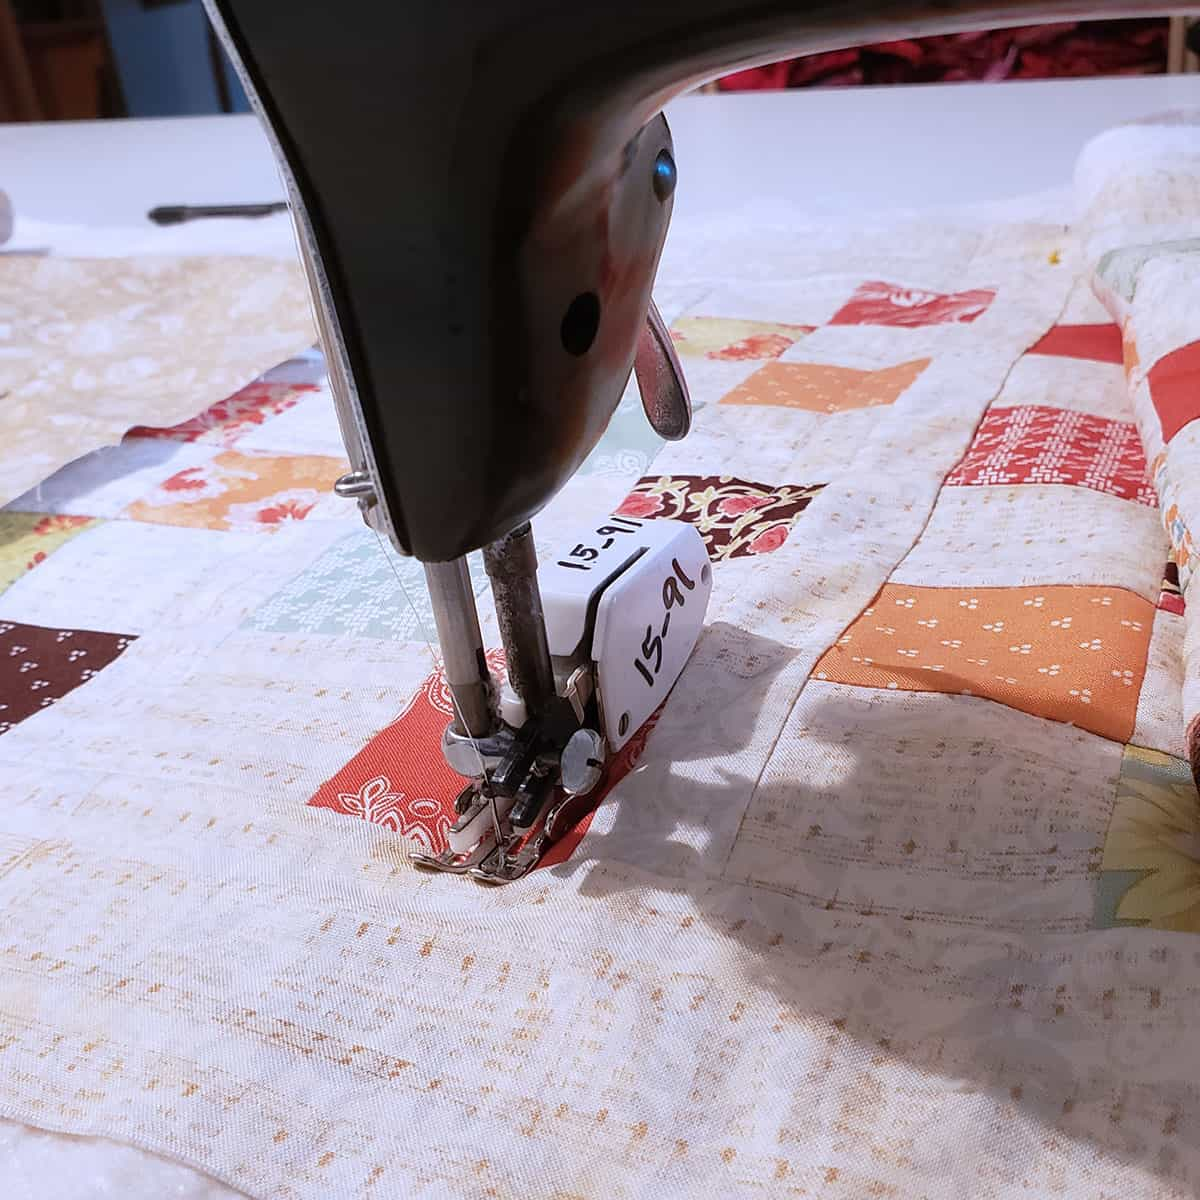 Using a walking foot on your sewing machine